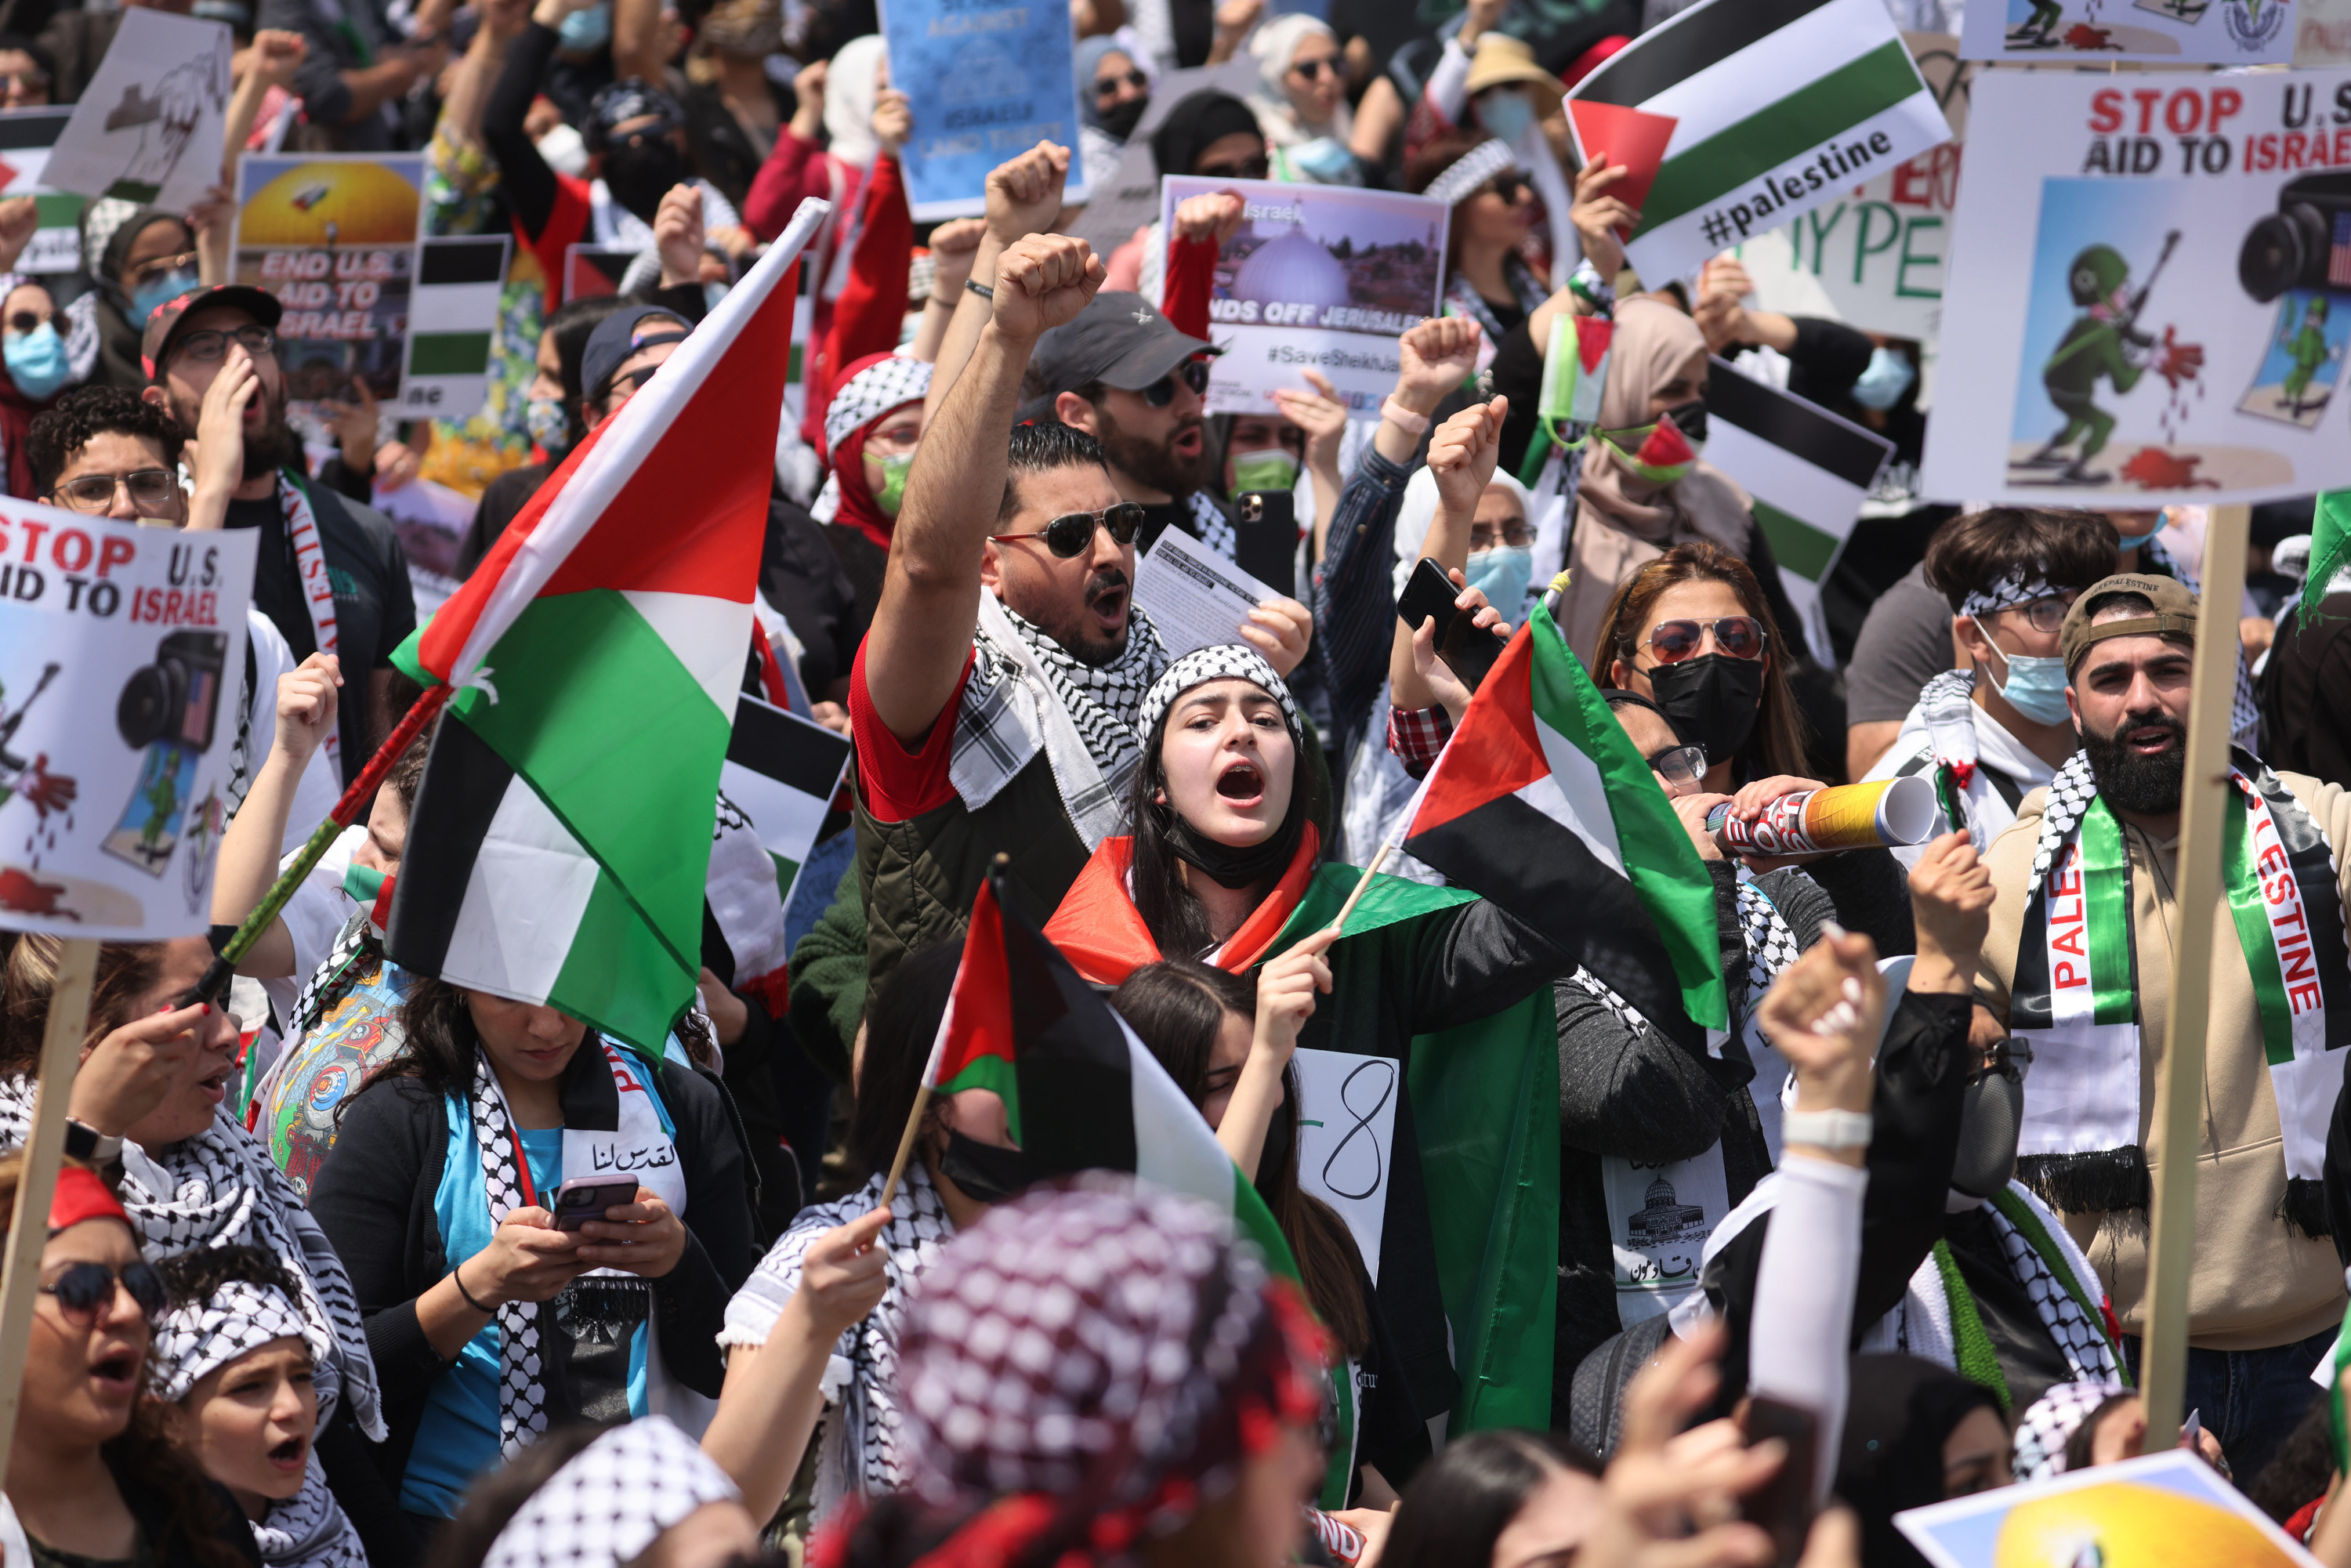 A group of people show their support for Palestine with signs and flags